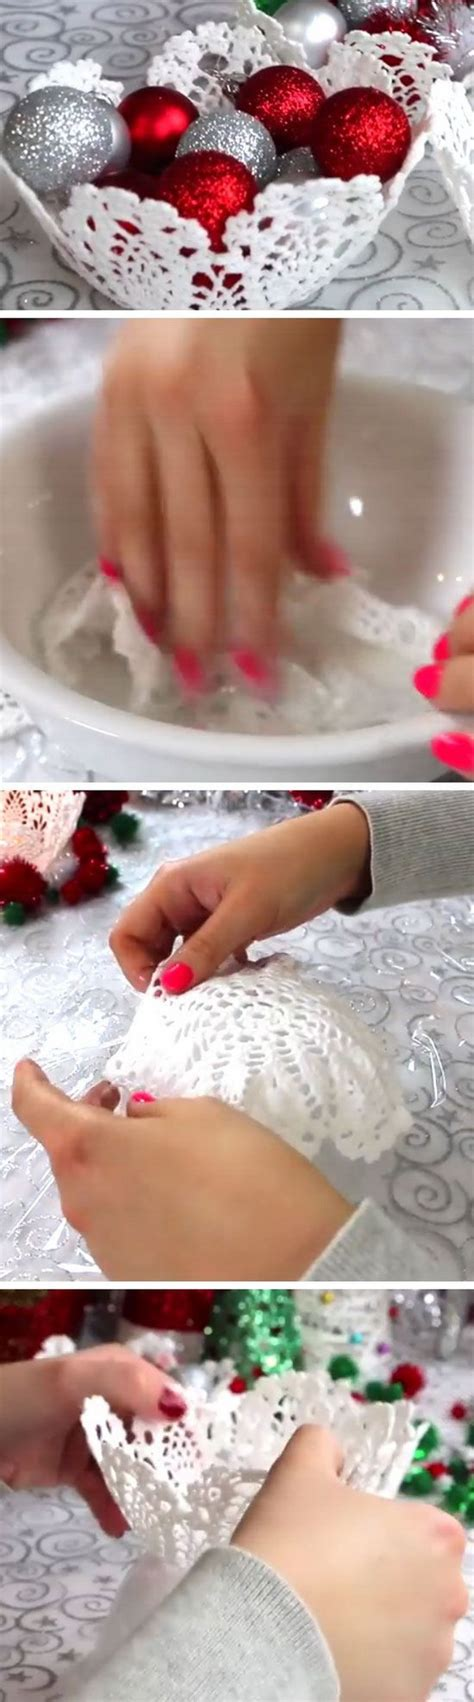 40+ Frugal And Festive Diy Dollar Store Christmas